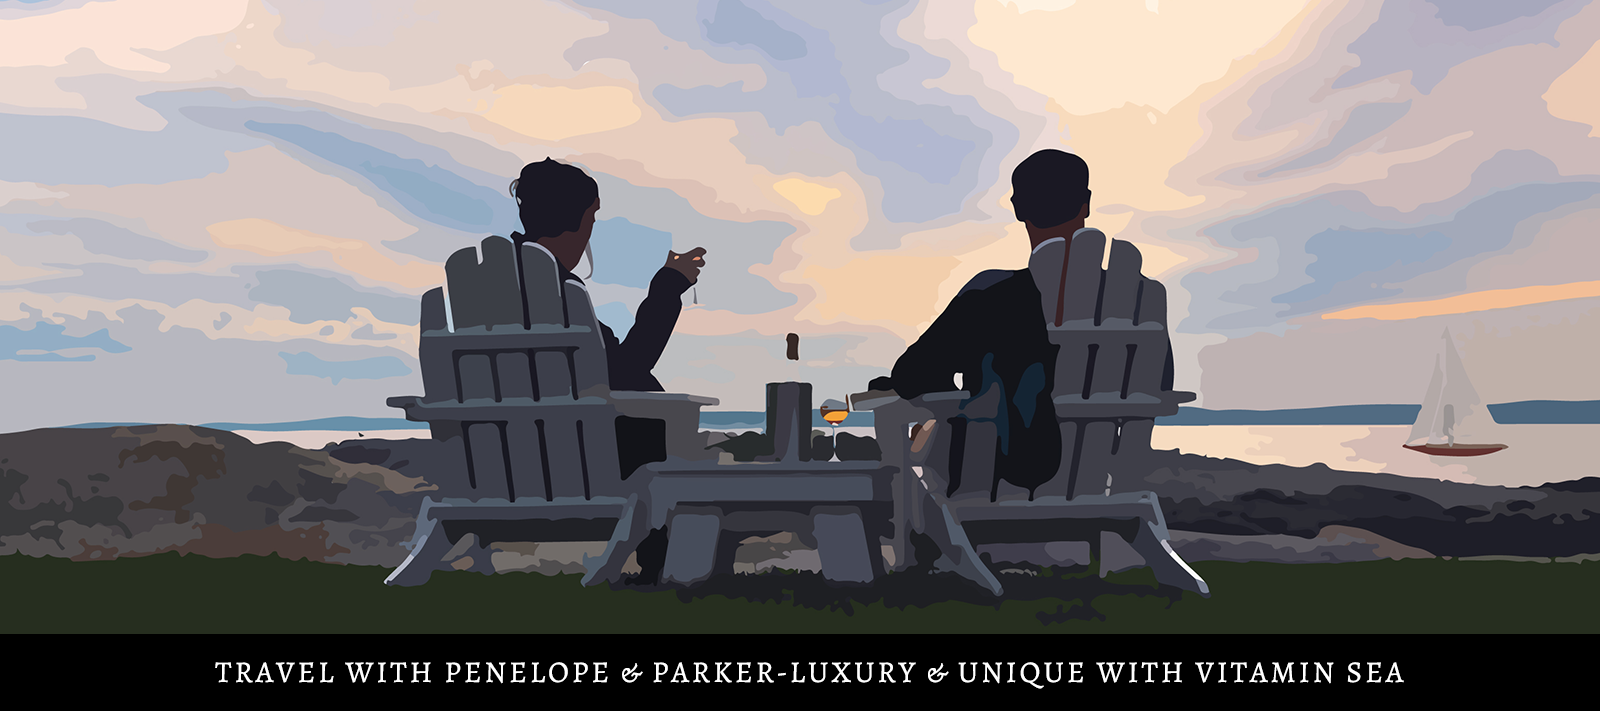 June Fun and Frolics - Travel with Penelope and Parker